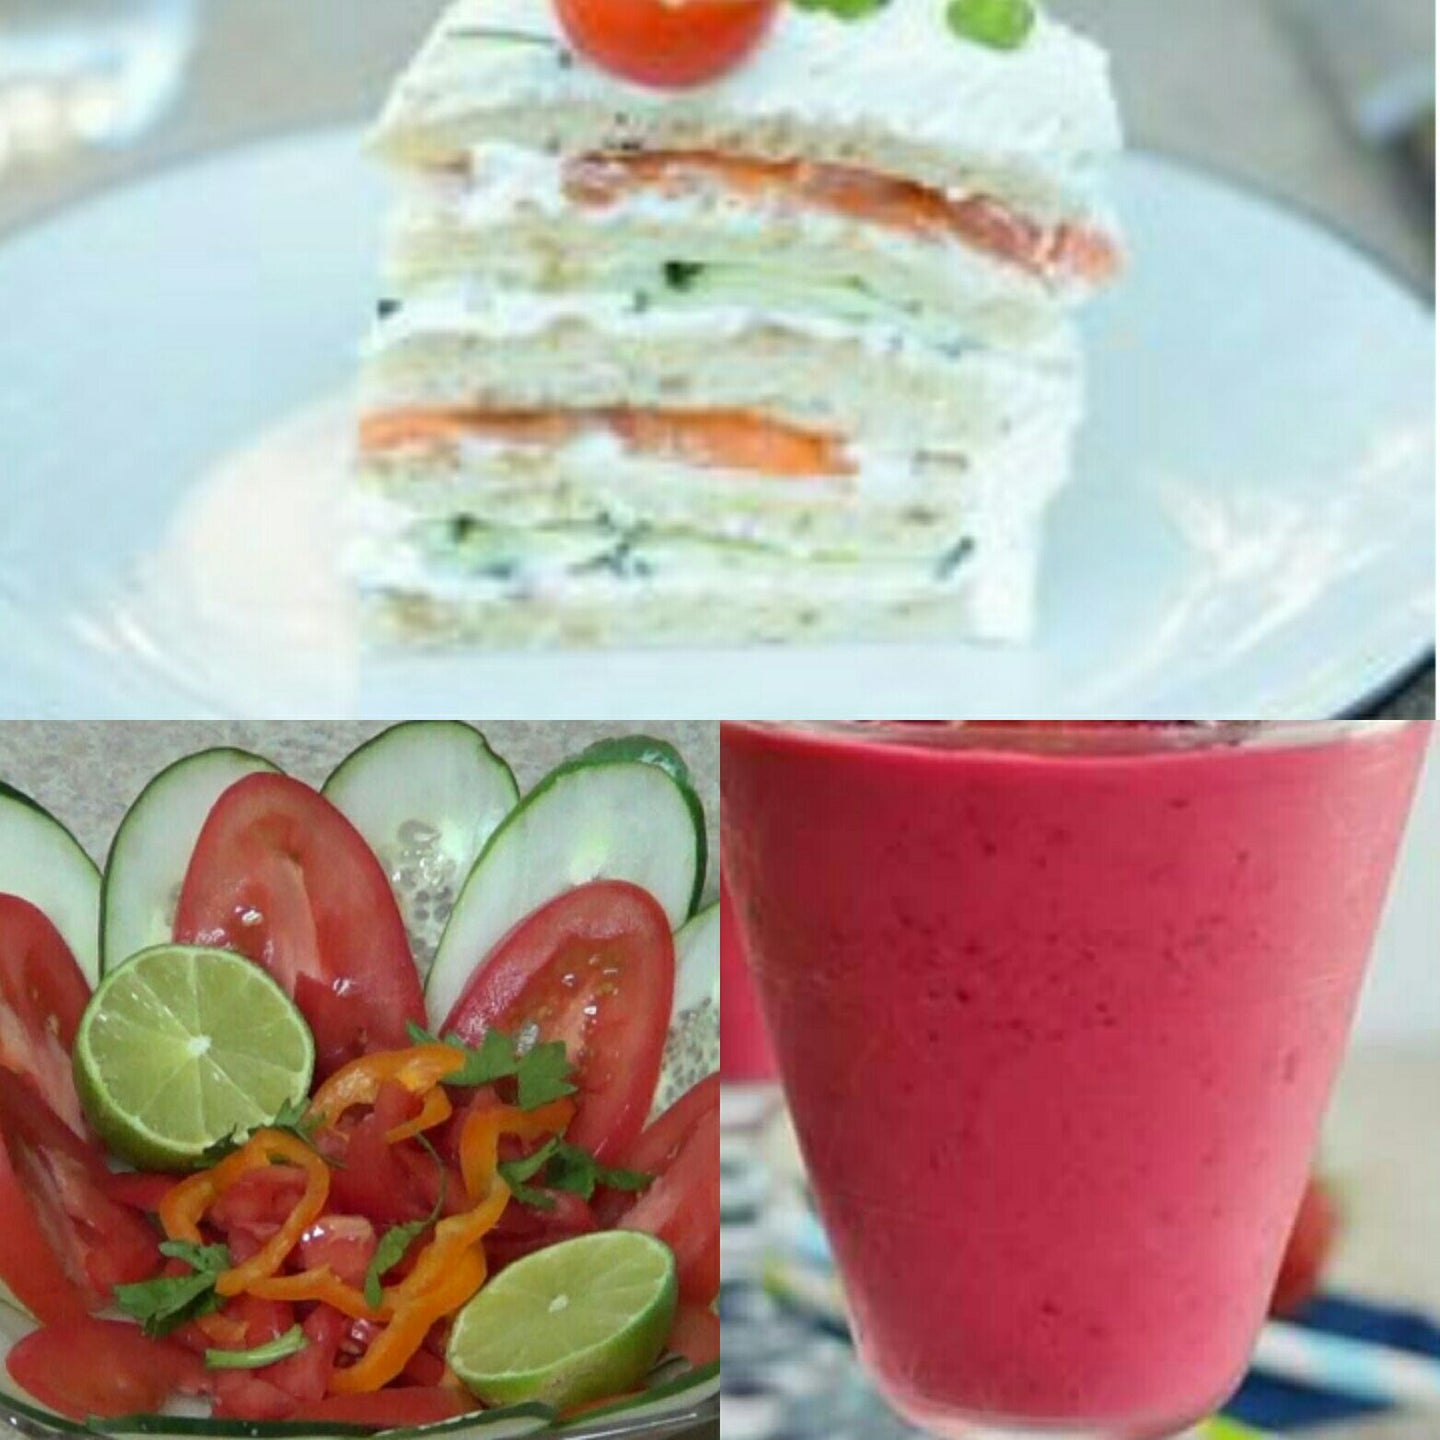 Mao Sandwich-2,Milk Shake-Vanila or Strawberry or Jeera-Optional,Salad